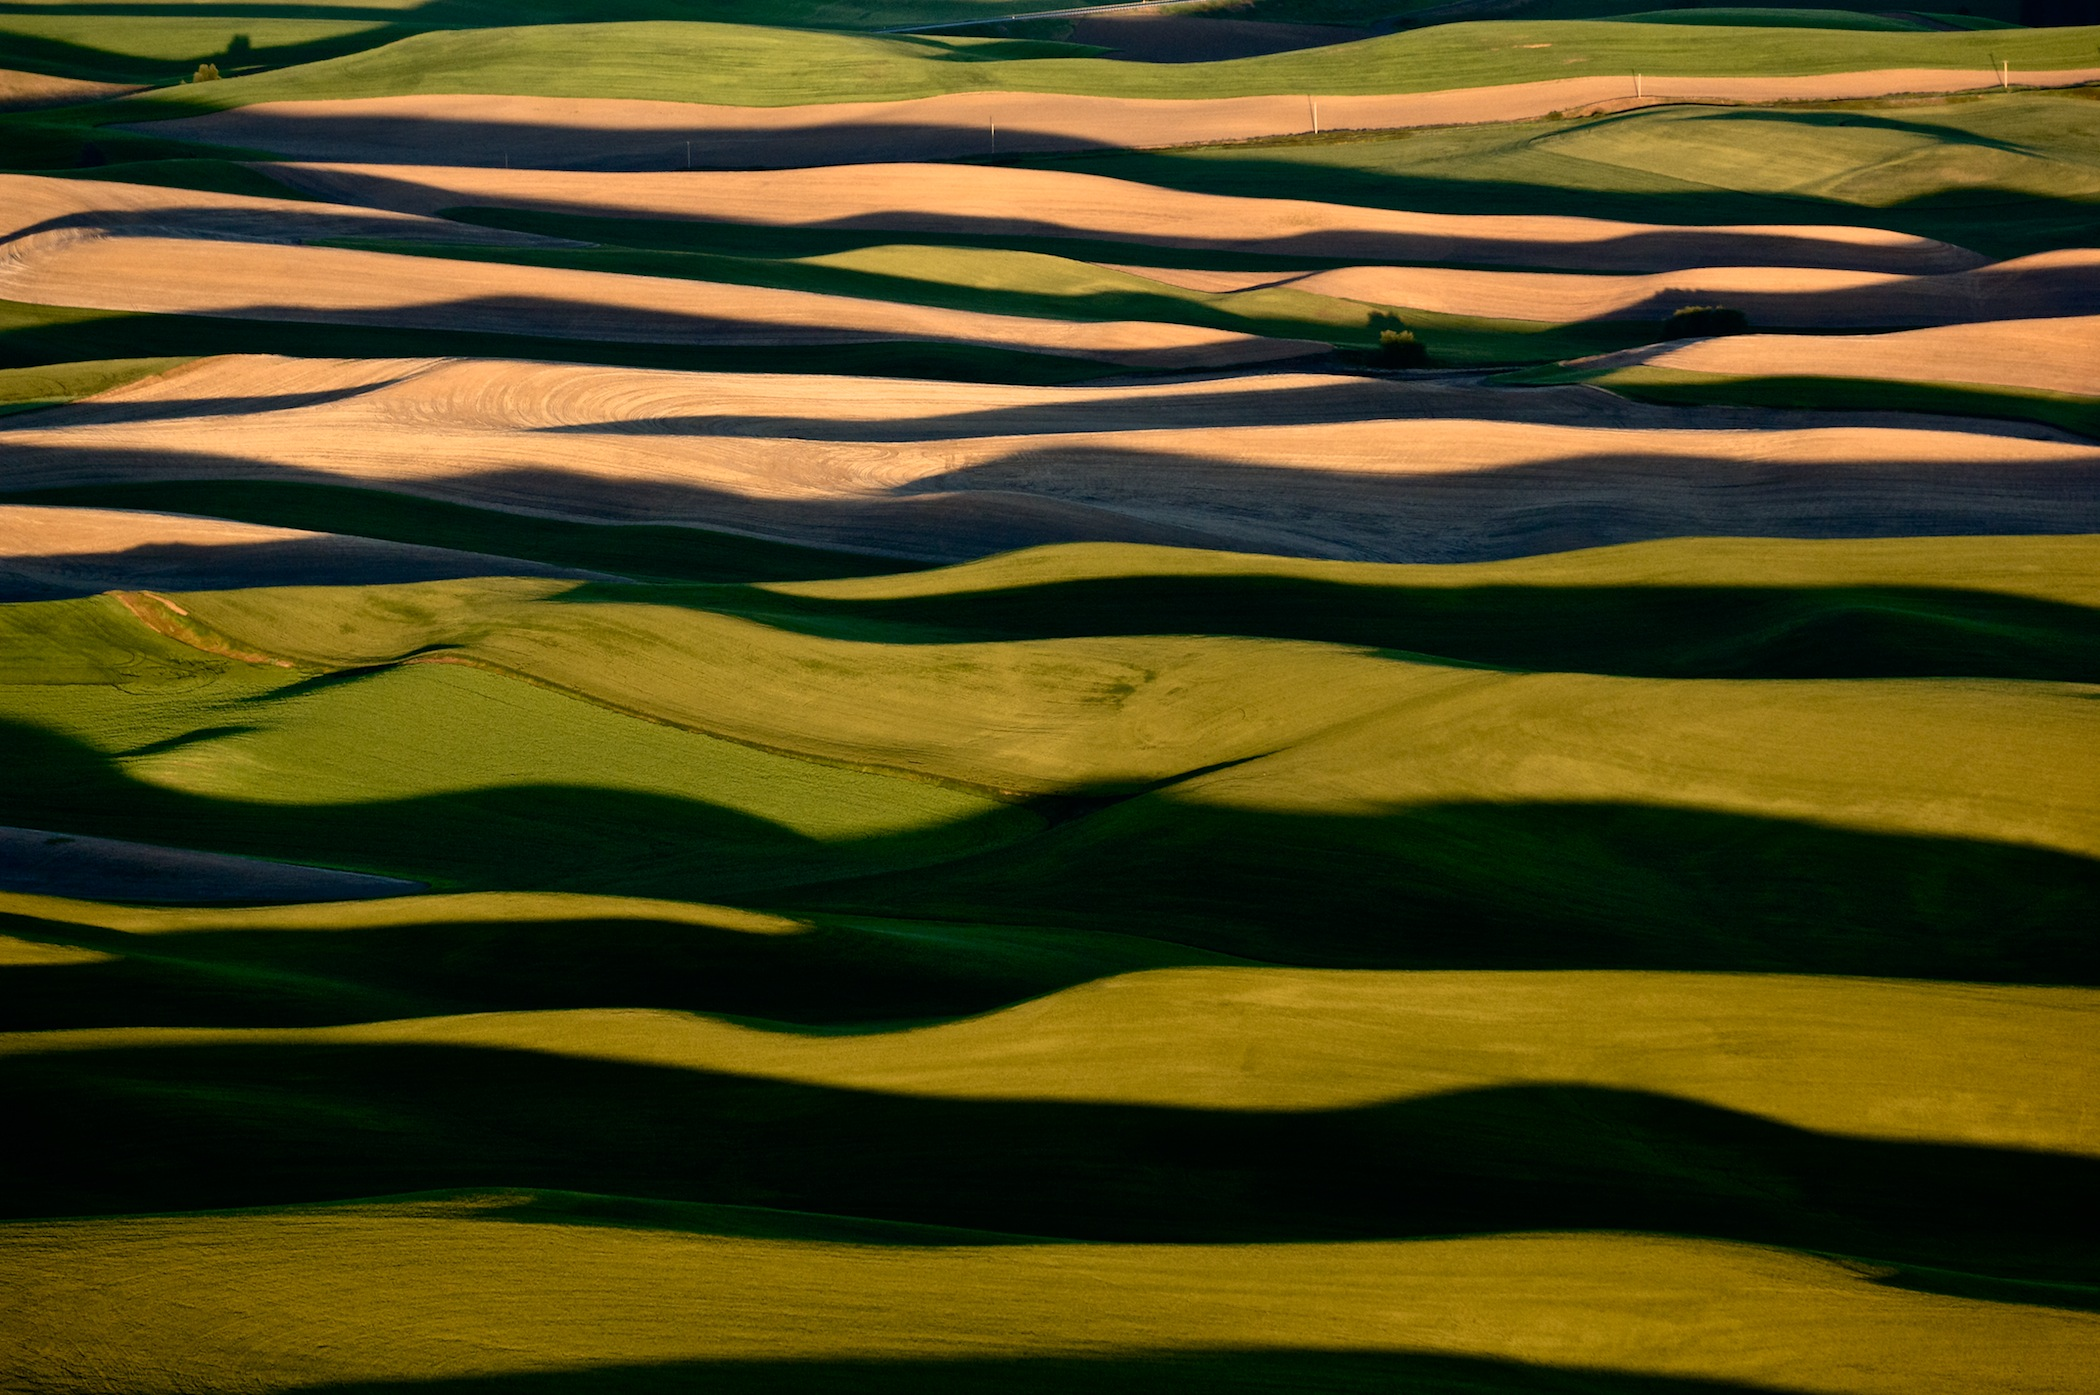 AGRICULTURAL DOMINANCE, THE PALOUSE, WASHINGTON